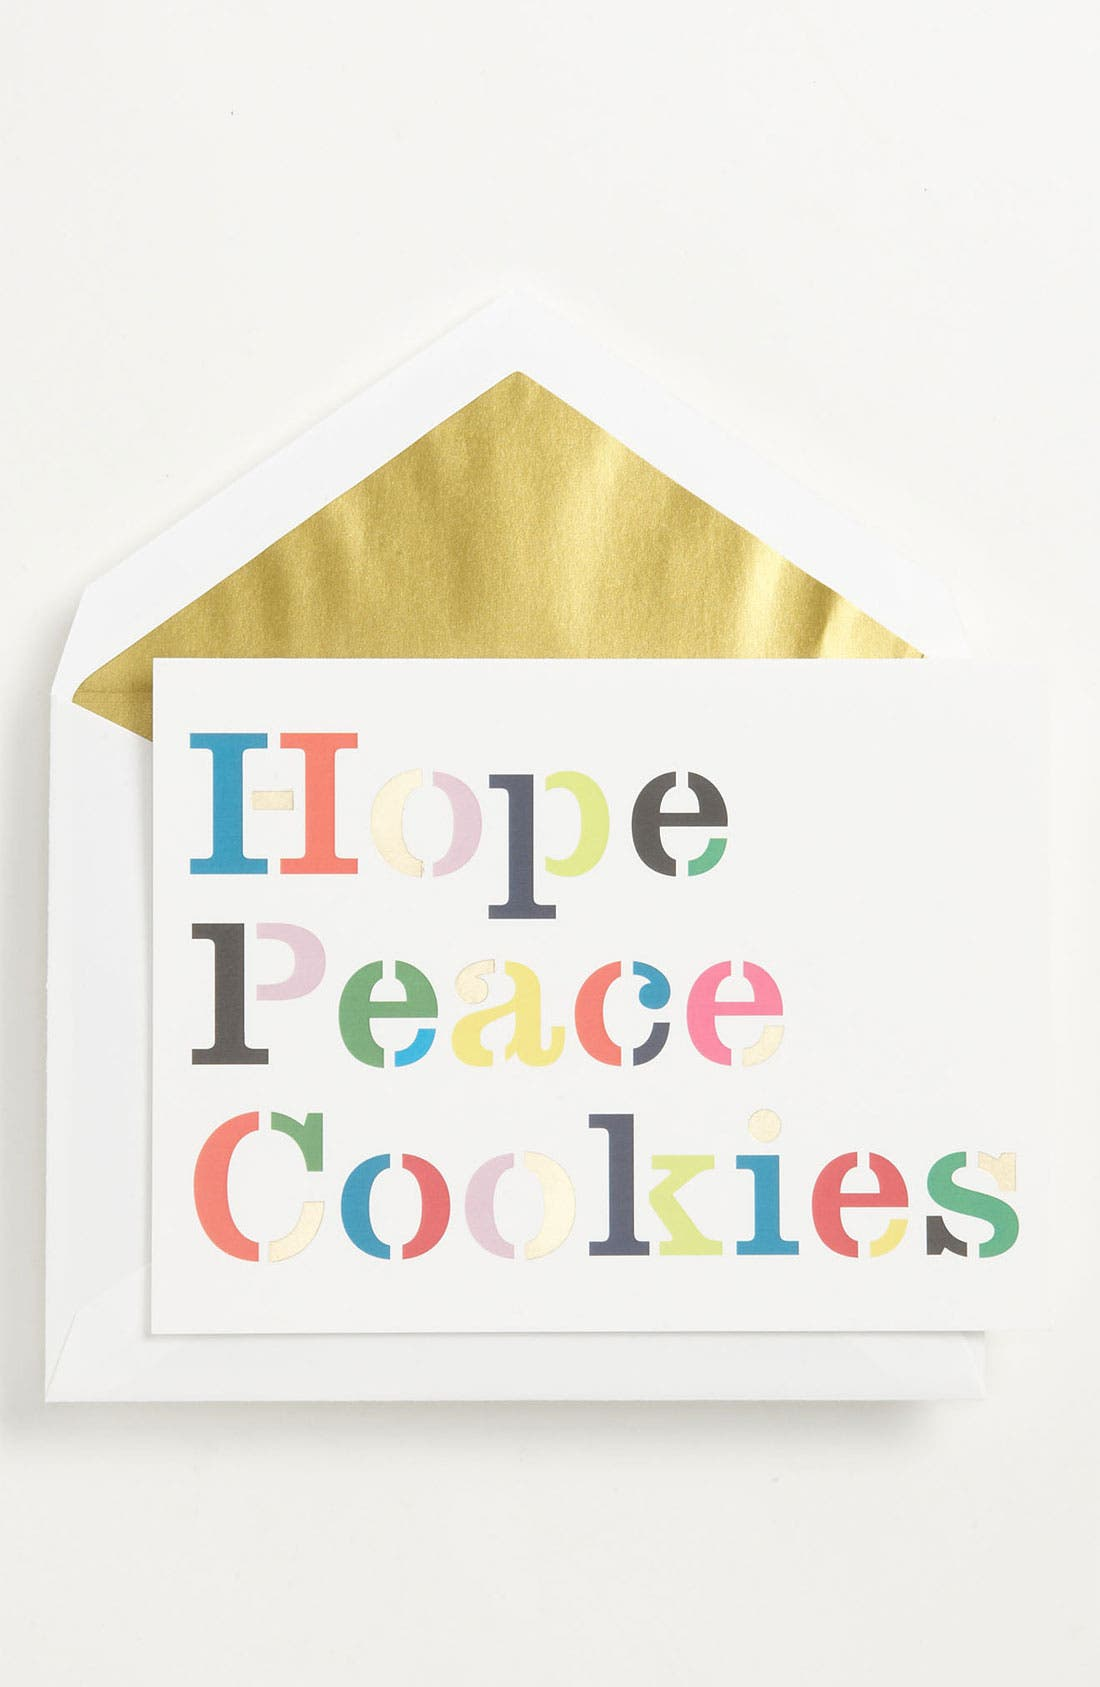 Main Image - kate spade new york 'hope peace cookies' foldover note cards (10-Pack)